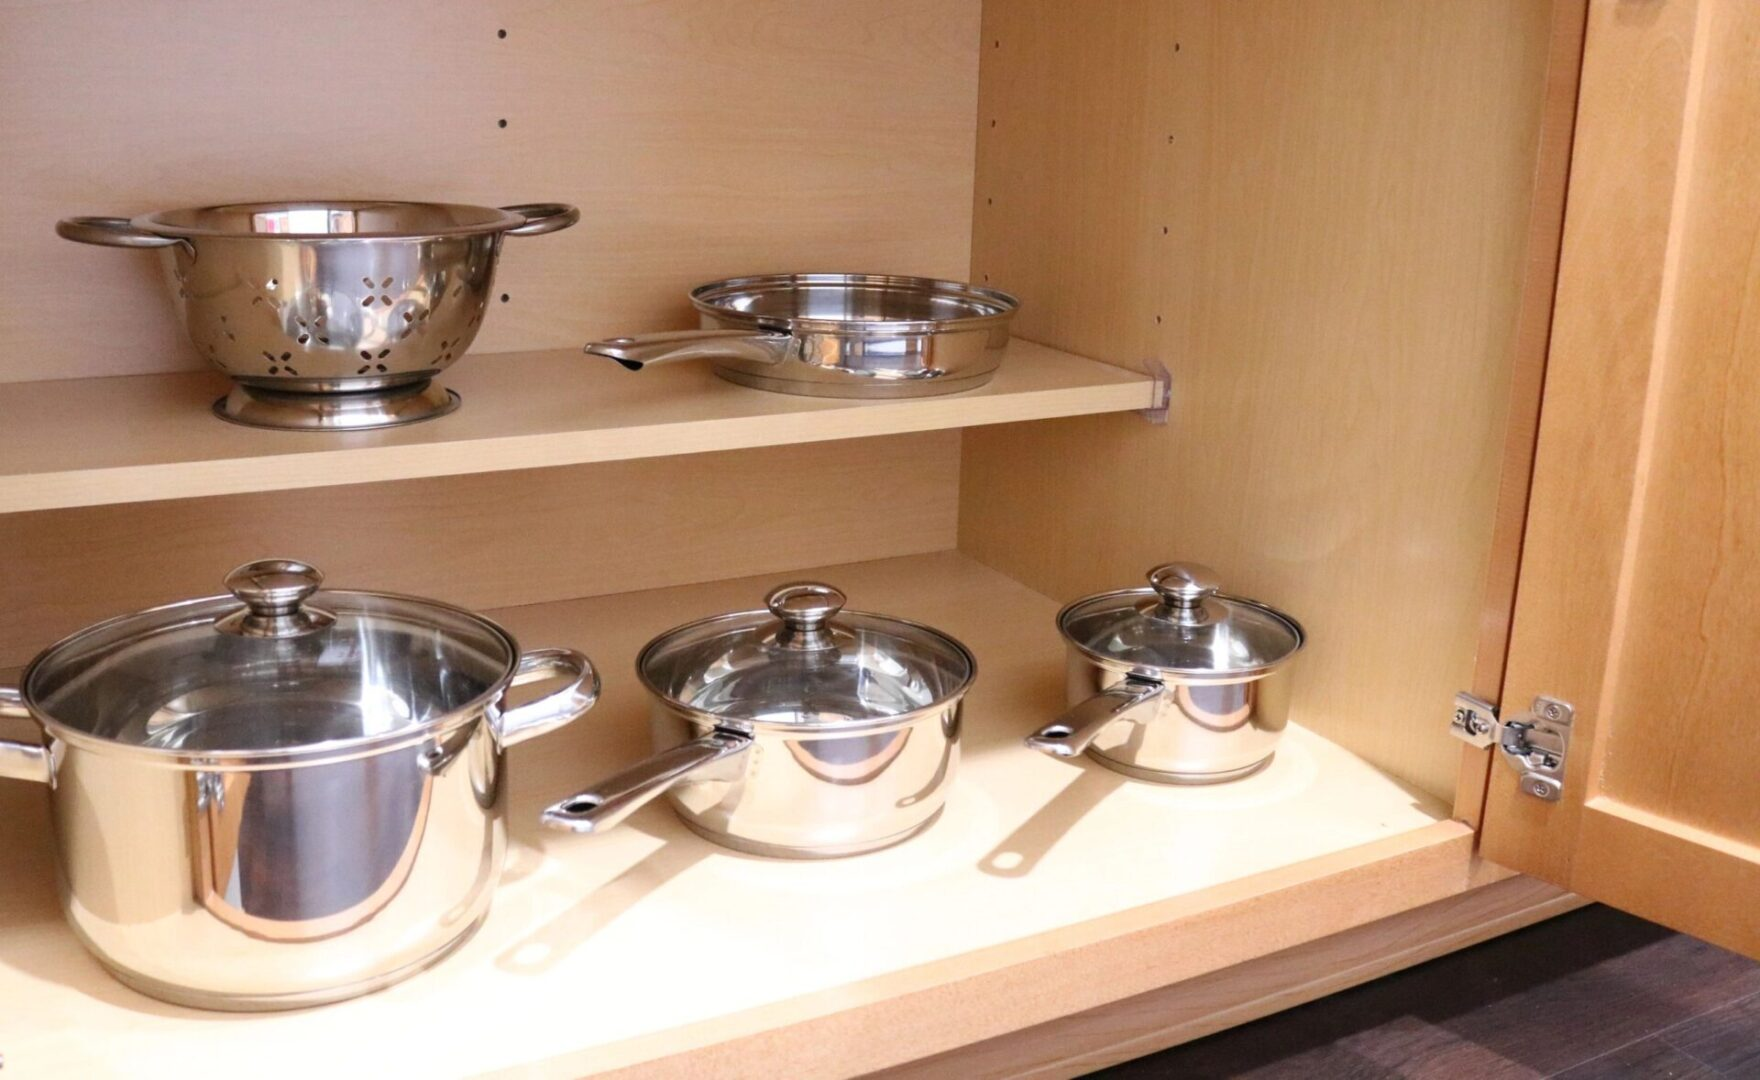 Every room has cookware to prepare your culinary meals